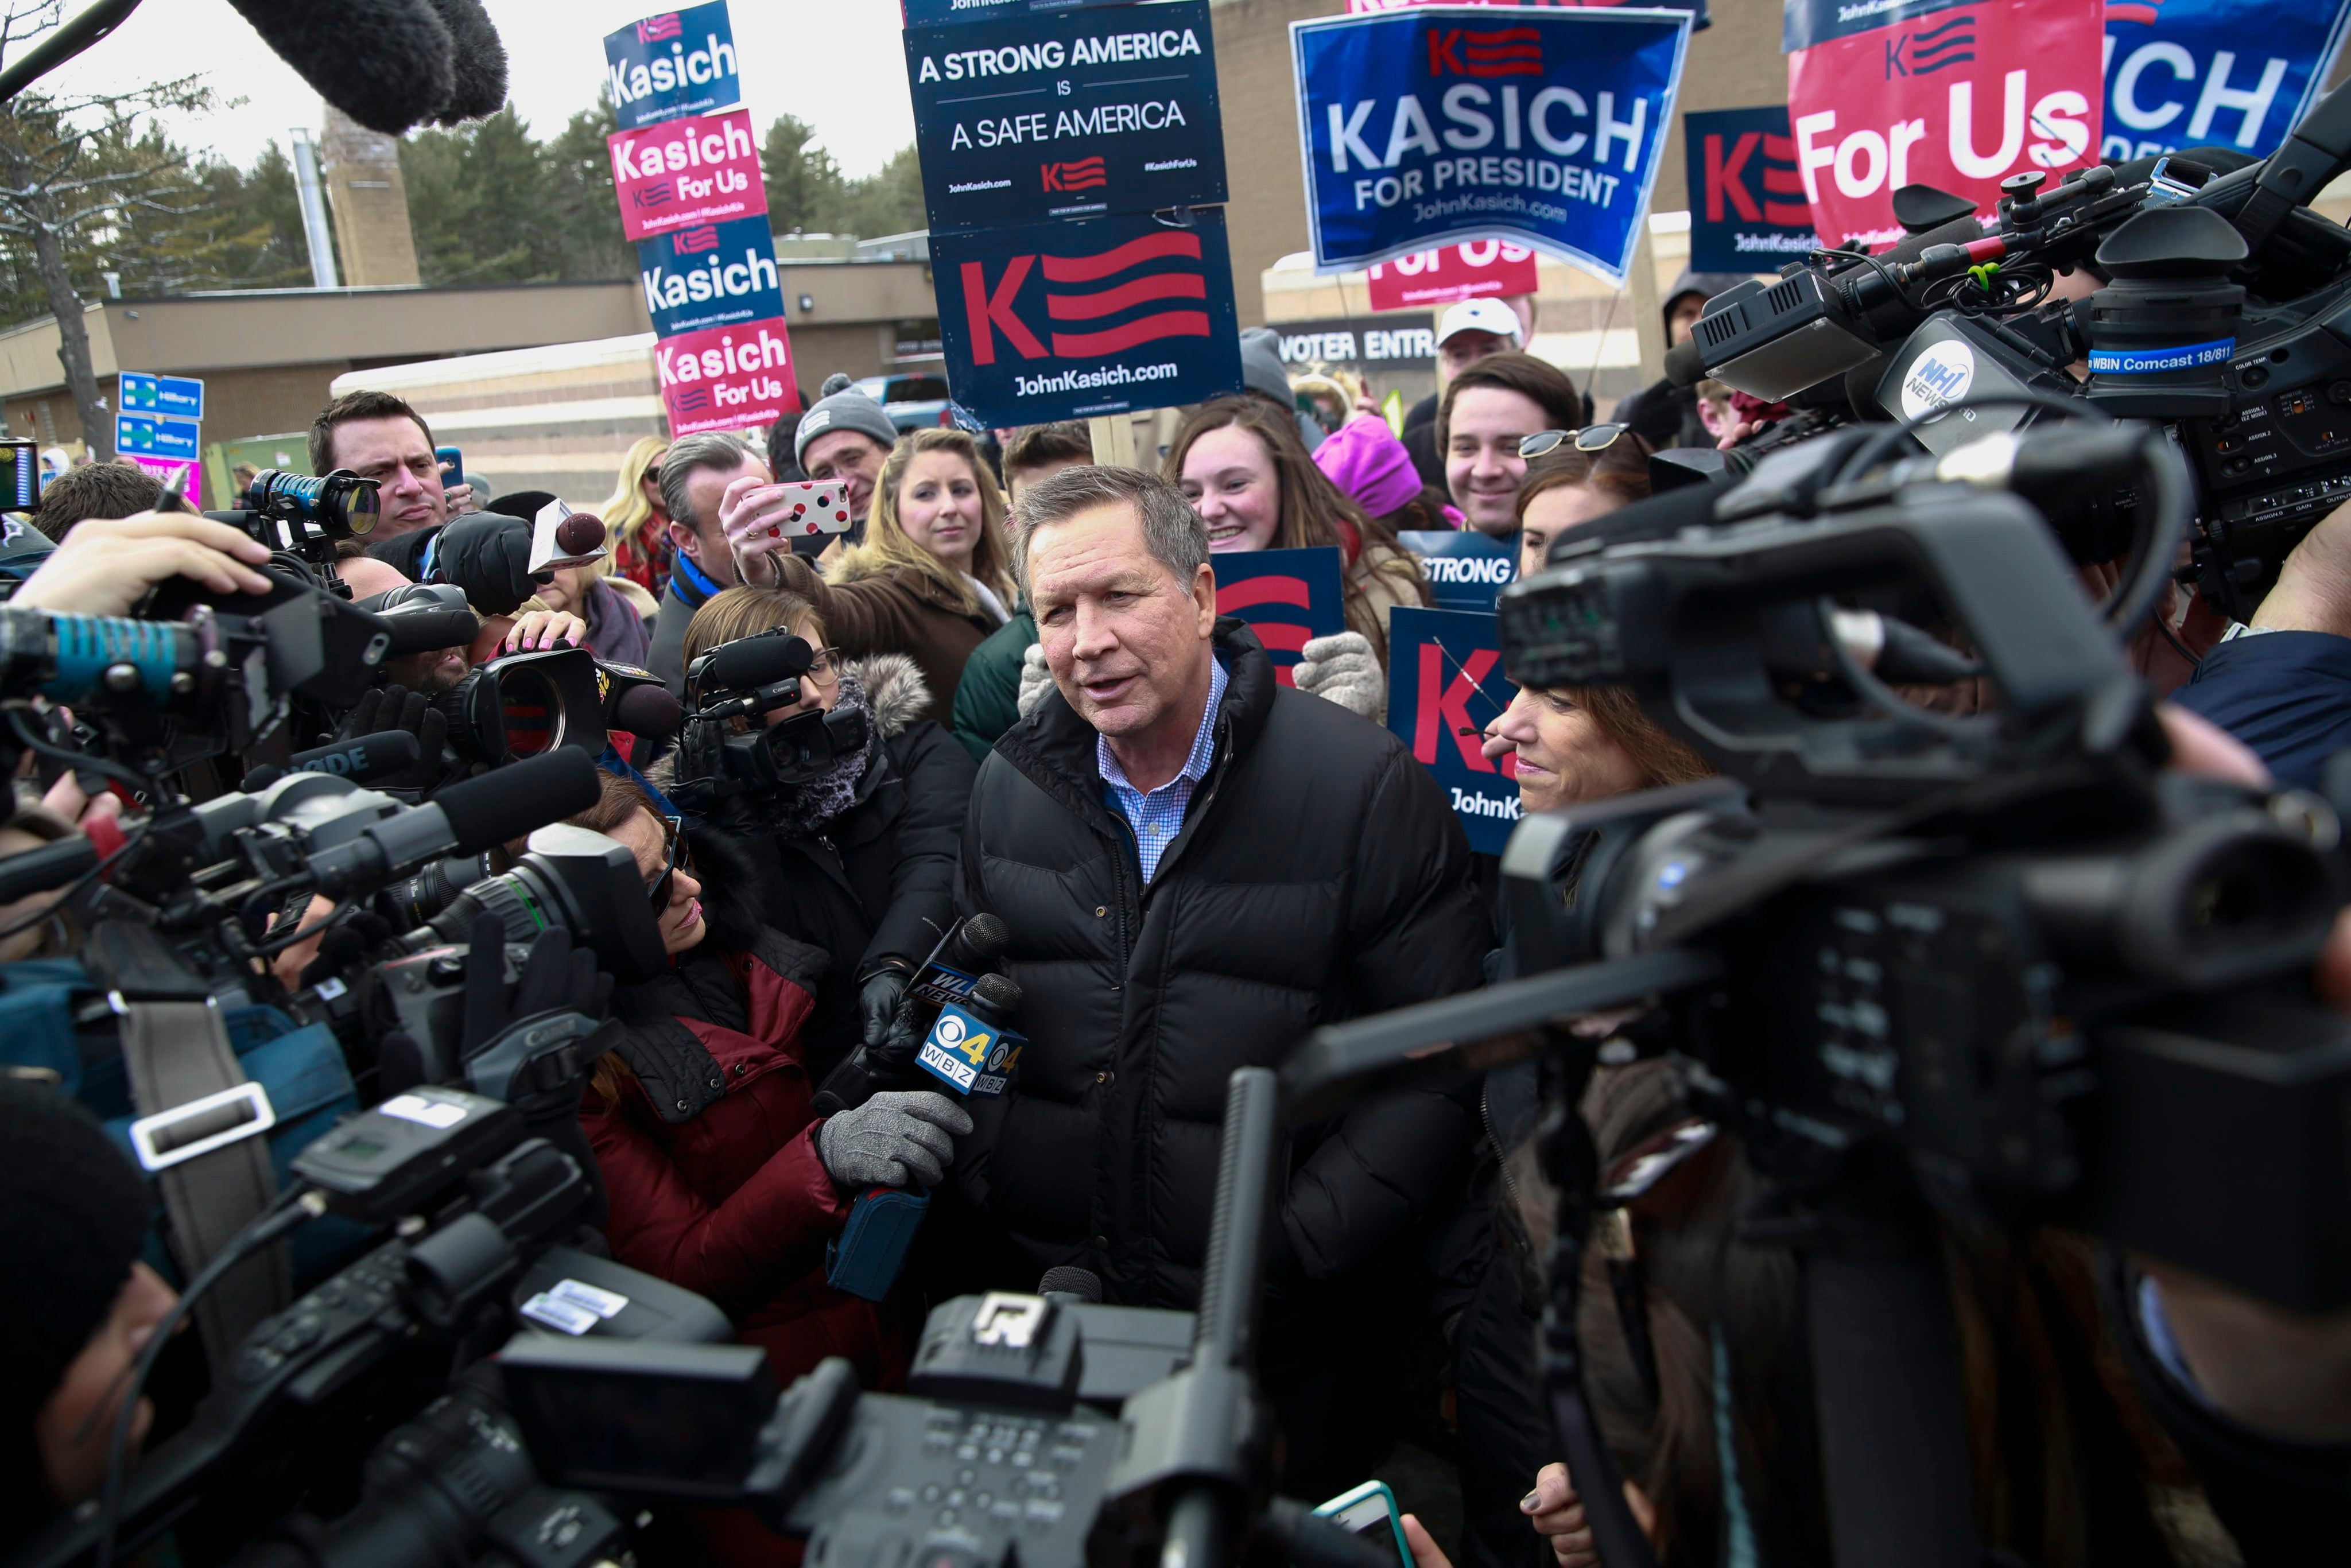 Republican candidate John Kasich is getting a lot of attention on the day of New Hampshire's primary.